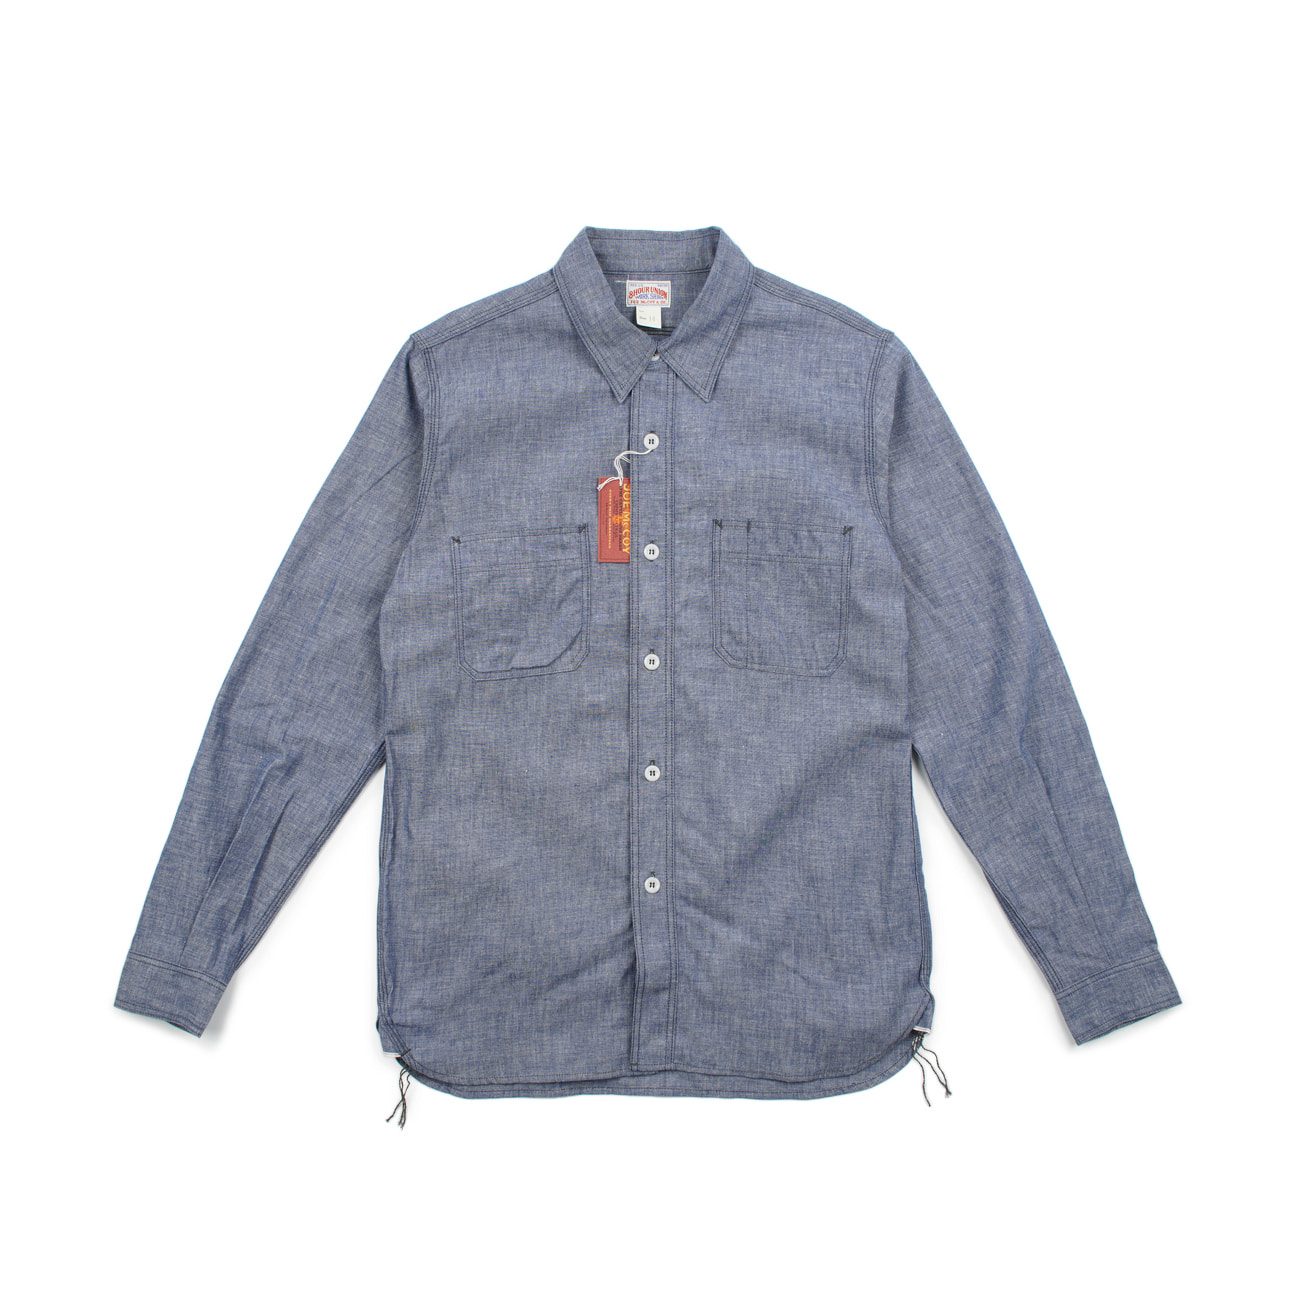 8 Hour Union Chambray Serviceman Shirt